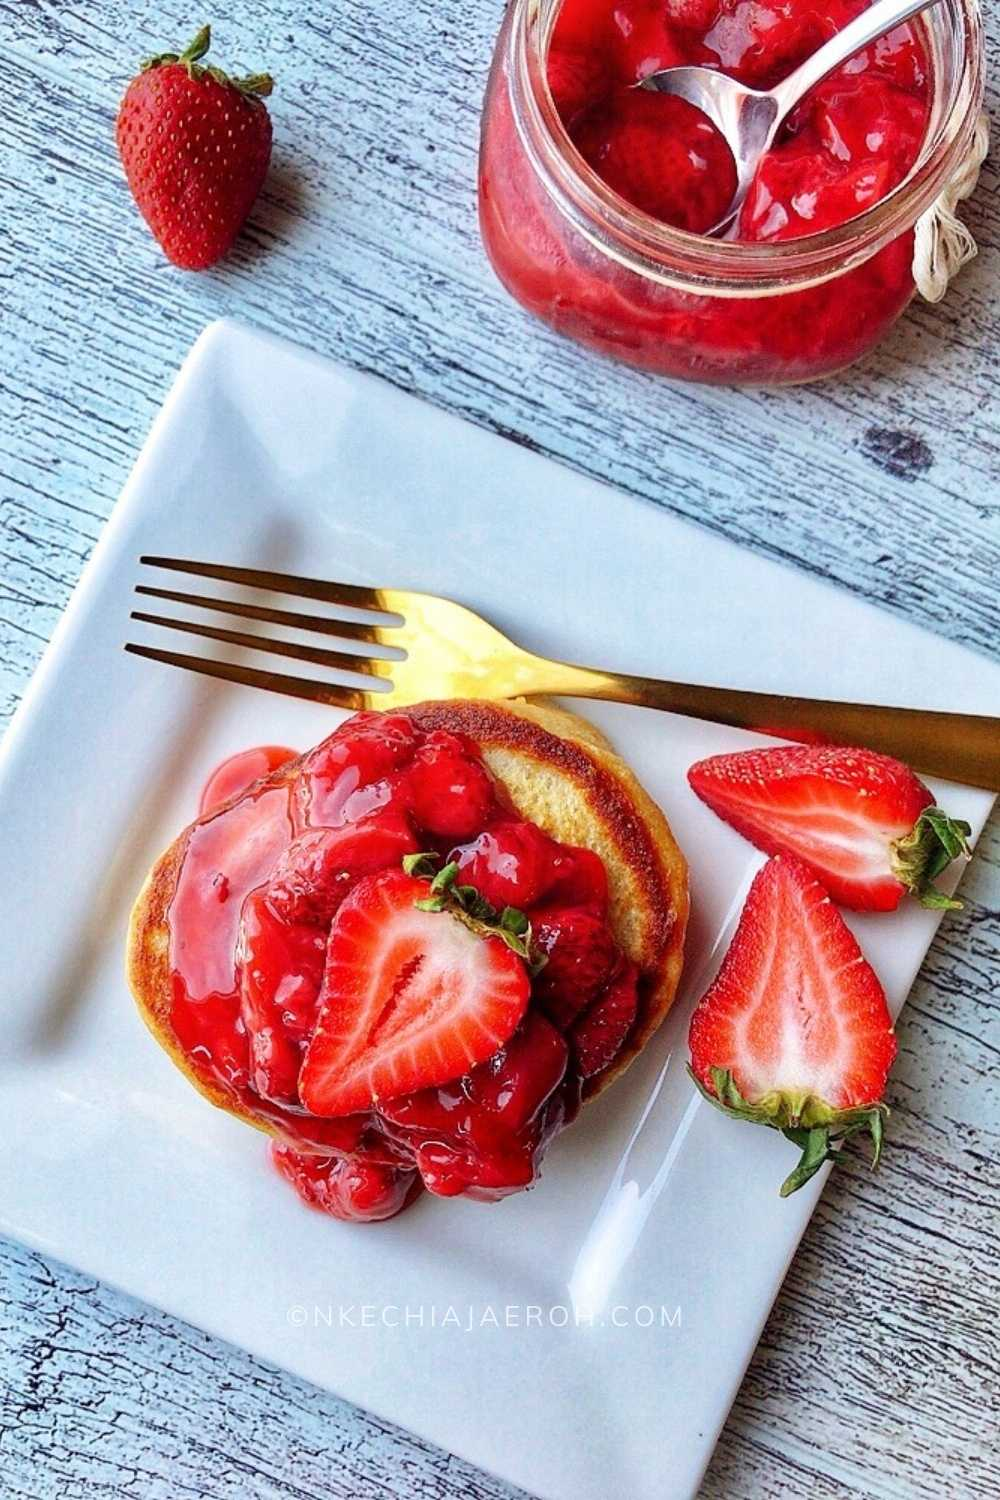 This pancake recipe is easy and healthy; you can't beat the Greek yogurt, buttermilk, coconut milk, and oatmeal together! Healthy breakfast recipes every family member would love! Make these fluffy pancakes from scratch, and you will make them again and again! As always, homemade pancakes are the best! I also topped these pancakes with strawberry sauce, and it made such a perfect healthy pancake recipe combination!